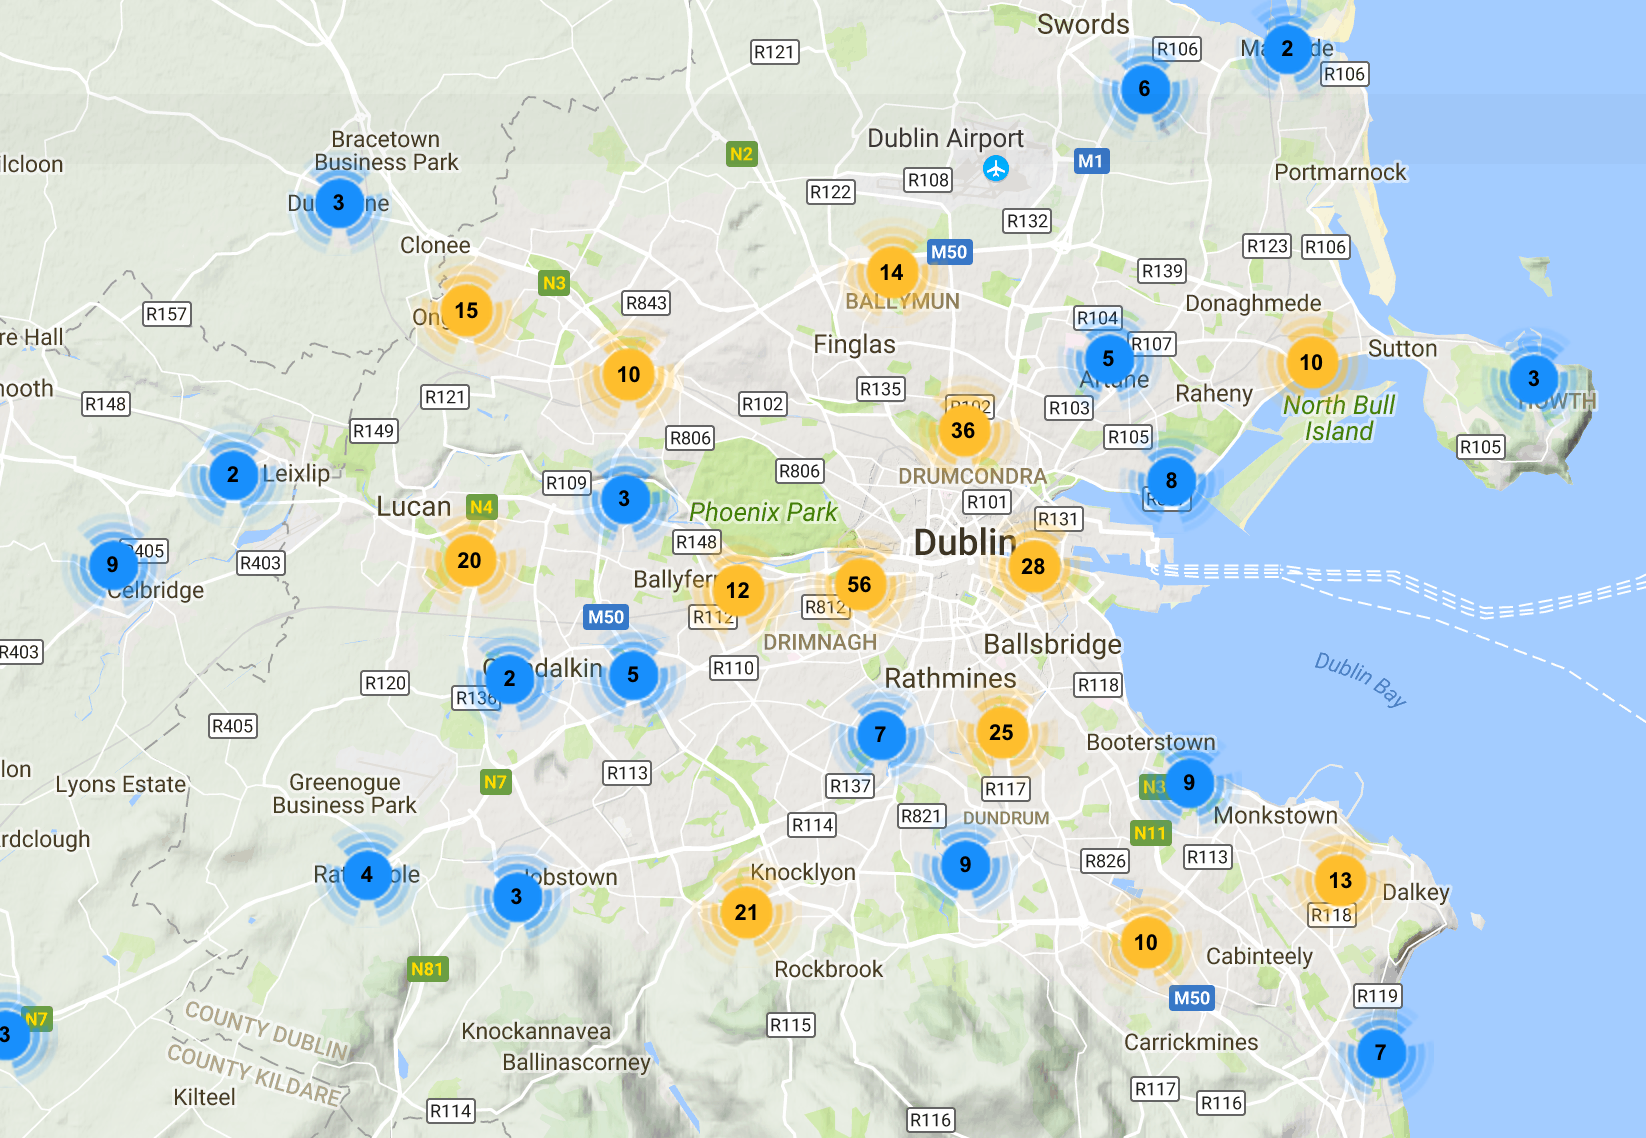 Check out the public events in Dublin this year!